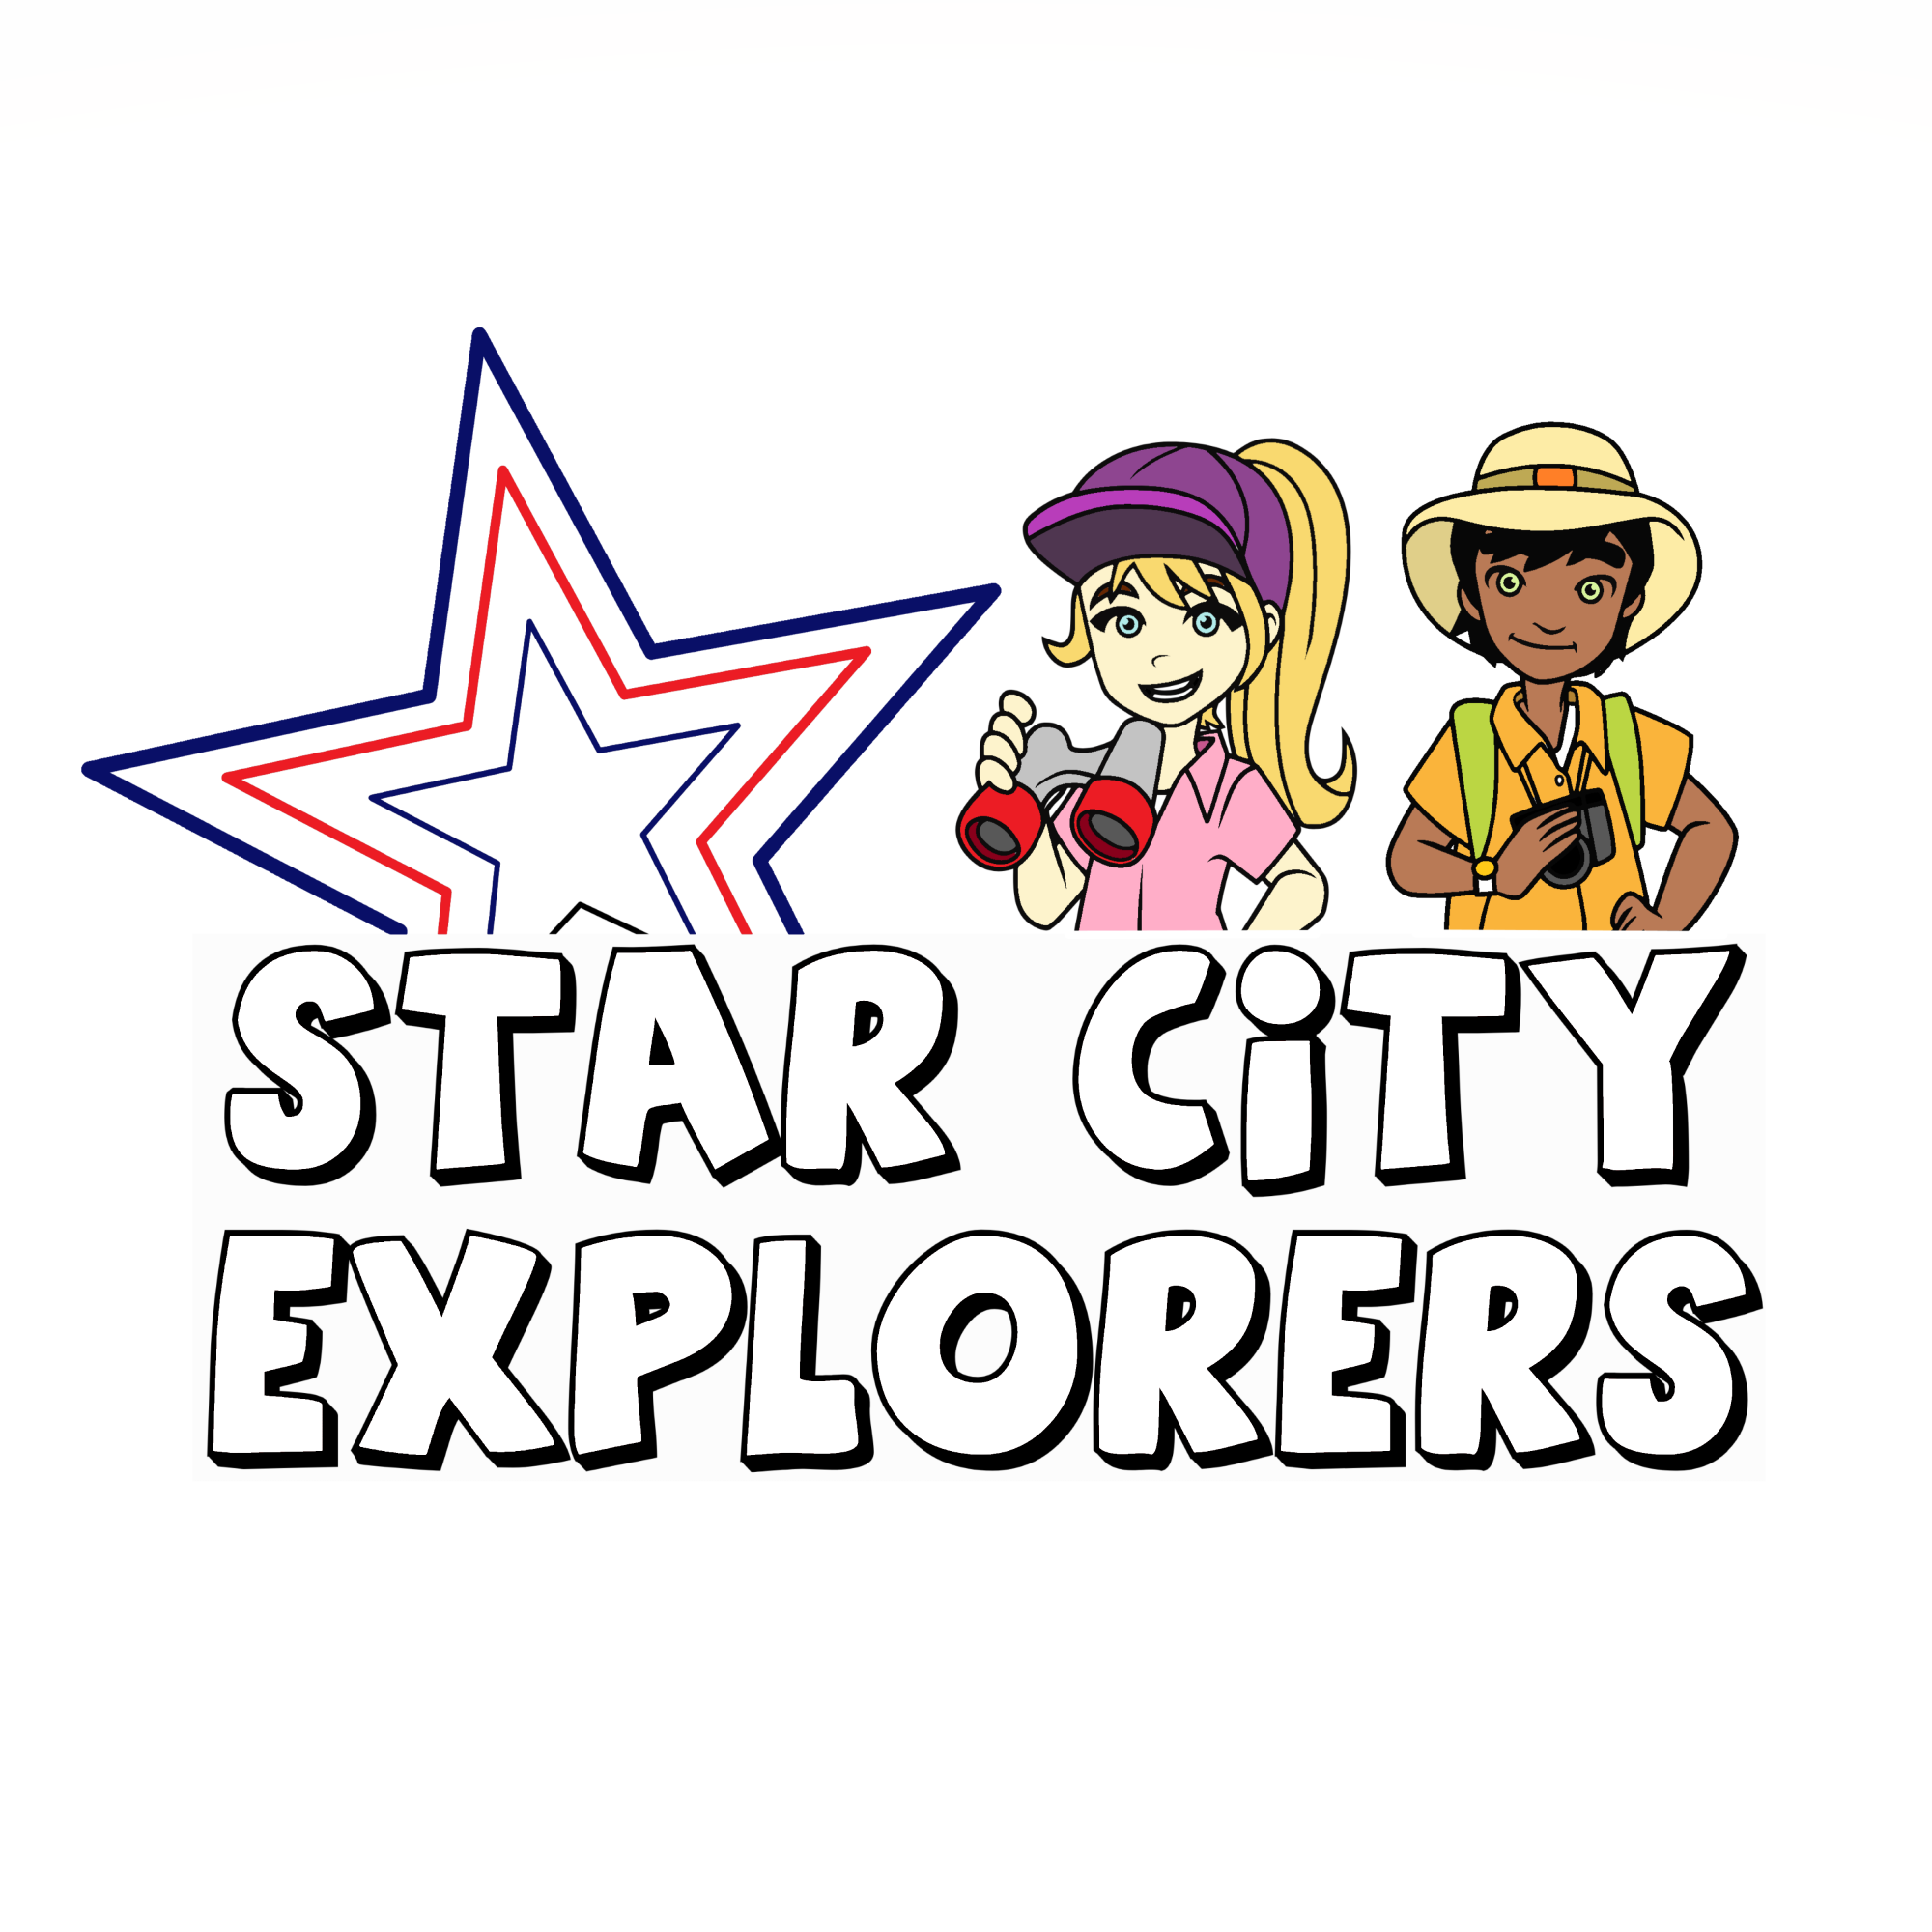 Star City Explorers graphic (colored)